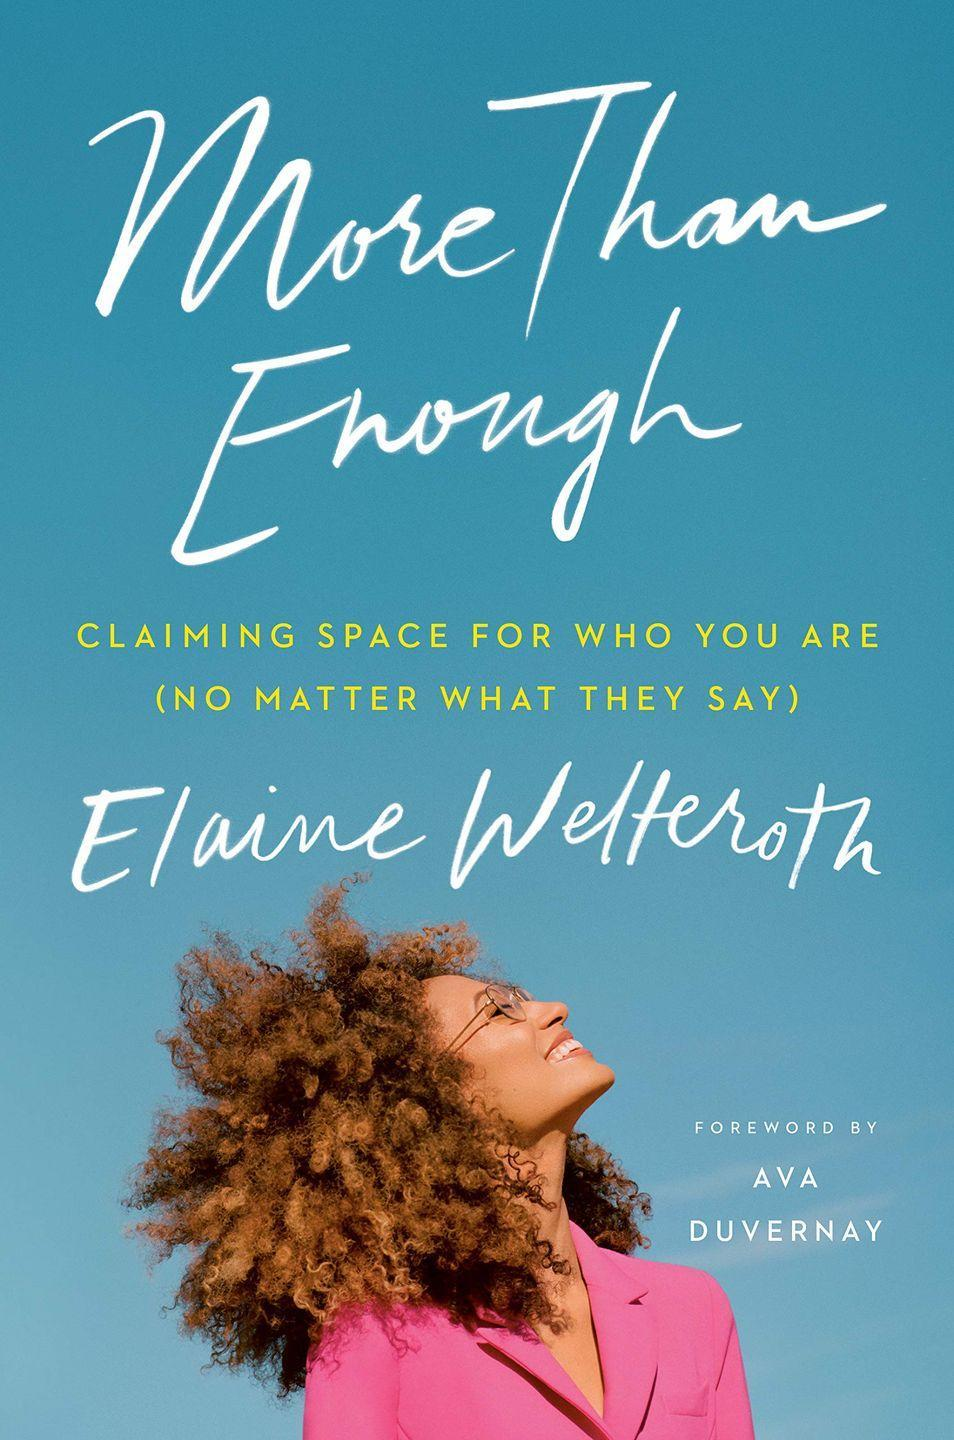 """<p>It's impossible to not be inspired by Elaine Welteroth, one of the youngest women to be made a Vogue editor (and only the second African American ever) whose part-memoir, part guide is a thoughtful and motivating take on pursuing your dreams.</p><p><a class=""""link rapid-noclick-resp"""" href=""""https://www.amazon.co.uk/More-Than-Enough-Elaine-Welteroth/dp/0525561587?tag=hearstuk-yahoo-21&ascsubtag=%5Bartid%7C1927.g.35995848%5Bsrc%7Cyahoo-uk"""" rel=""""nofollow noopener"""" target=""""_blank"""" data-ylk=""""slk:SHOP NOW"""">SHOP NOW</a></p>"""